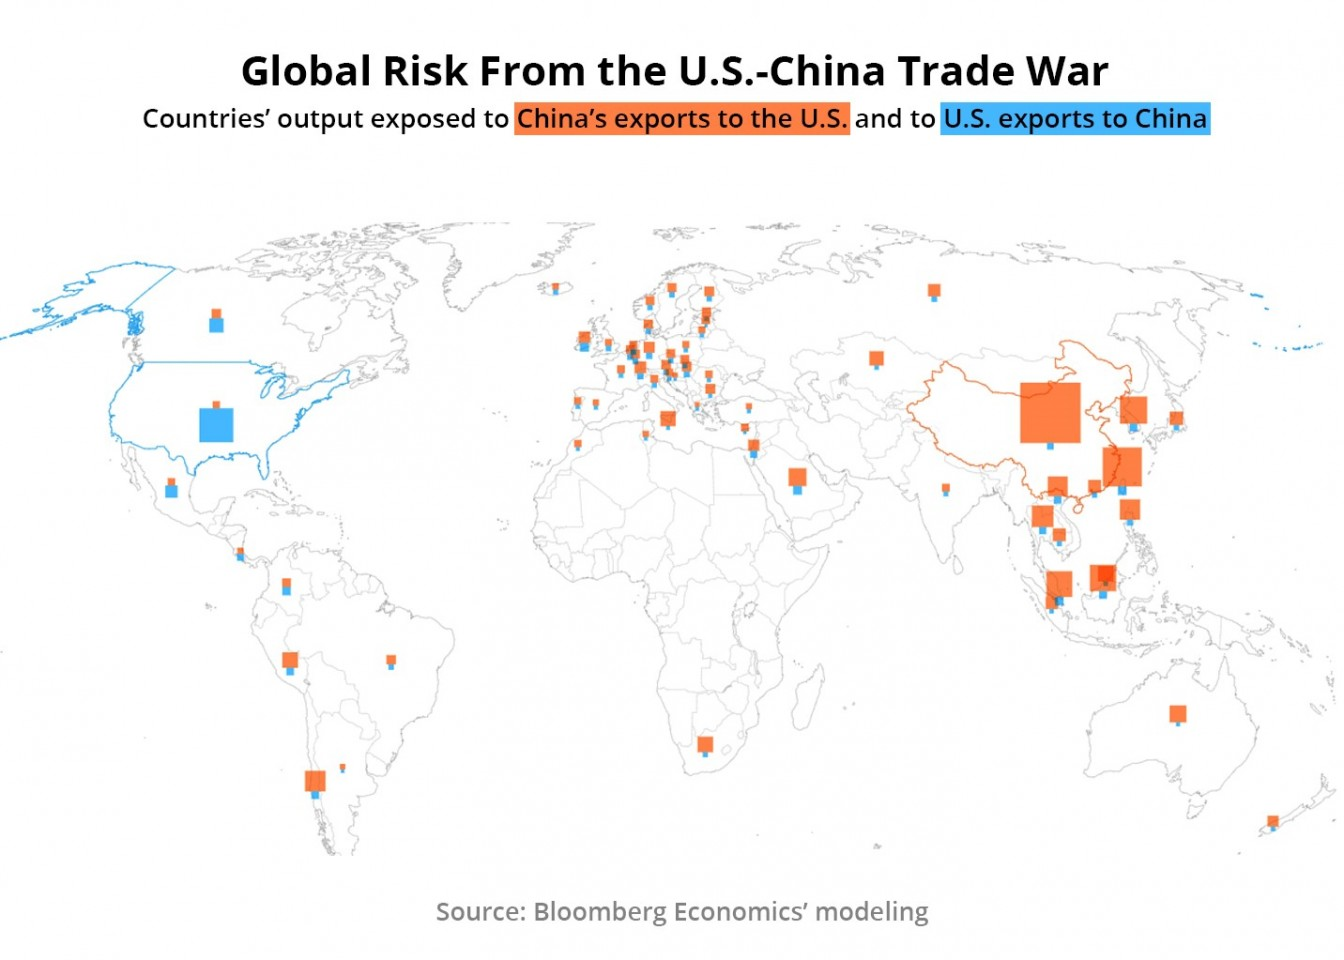 Figure 3: Global risk from the US-China trade war